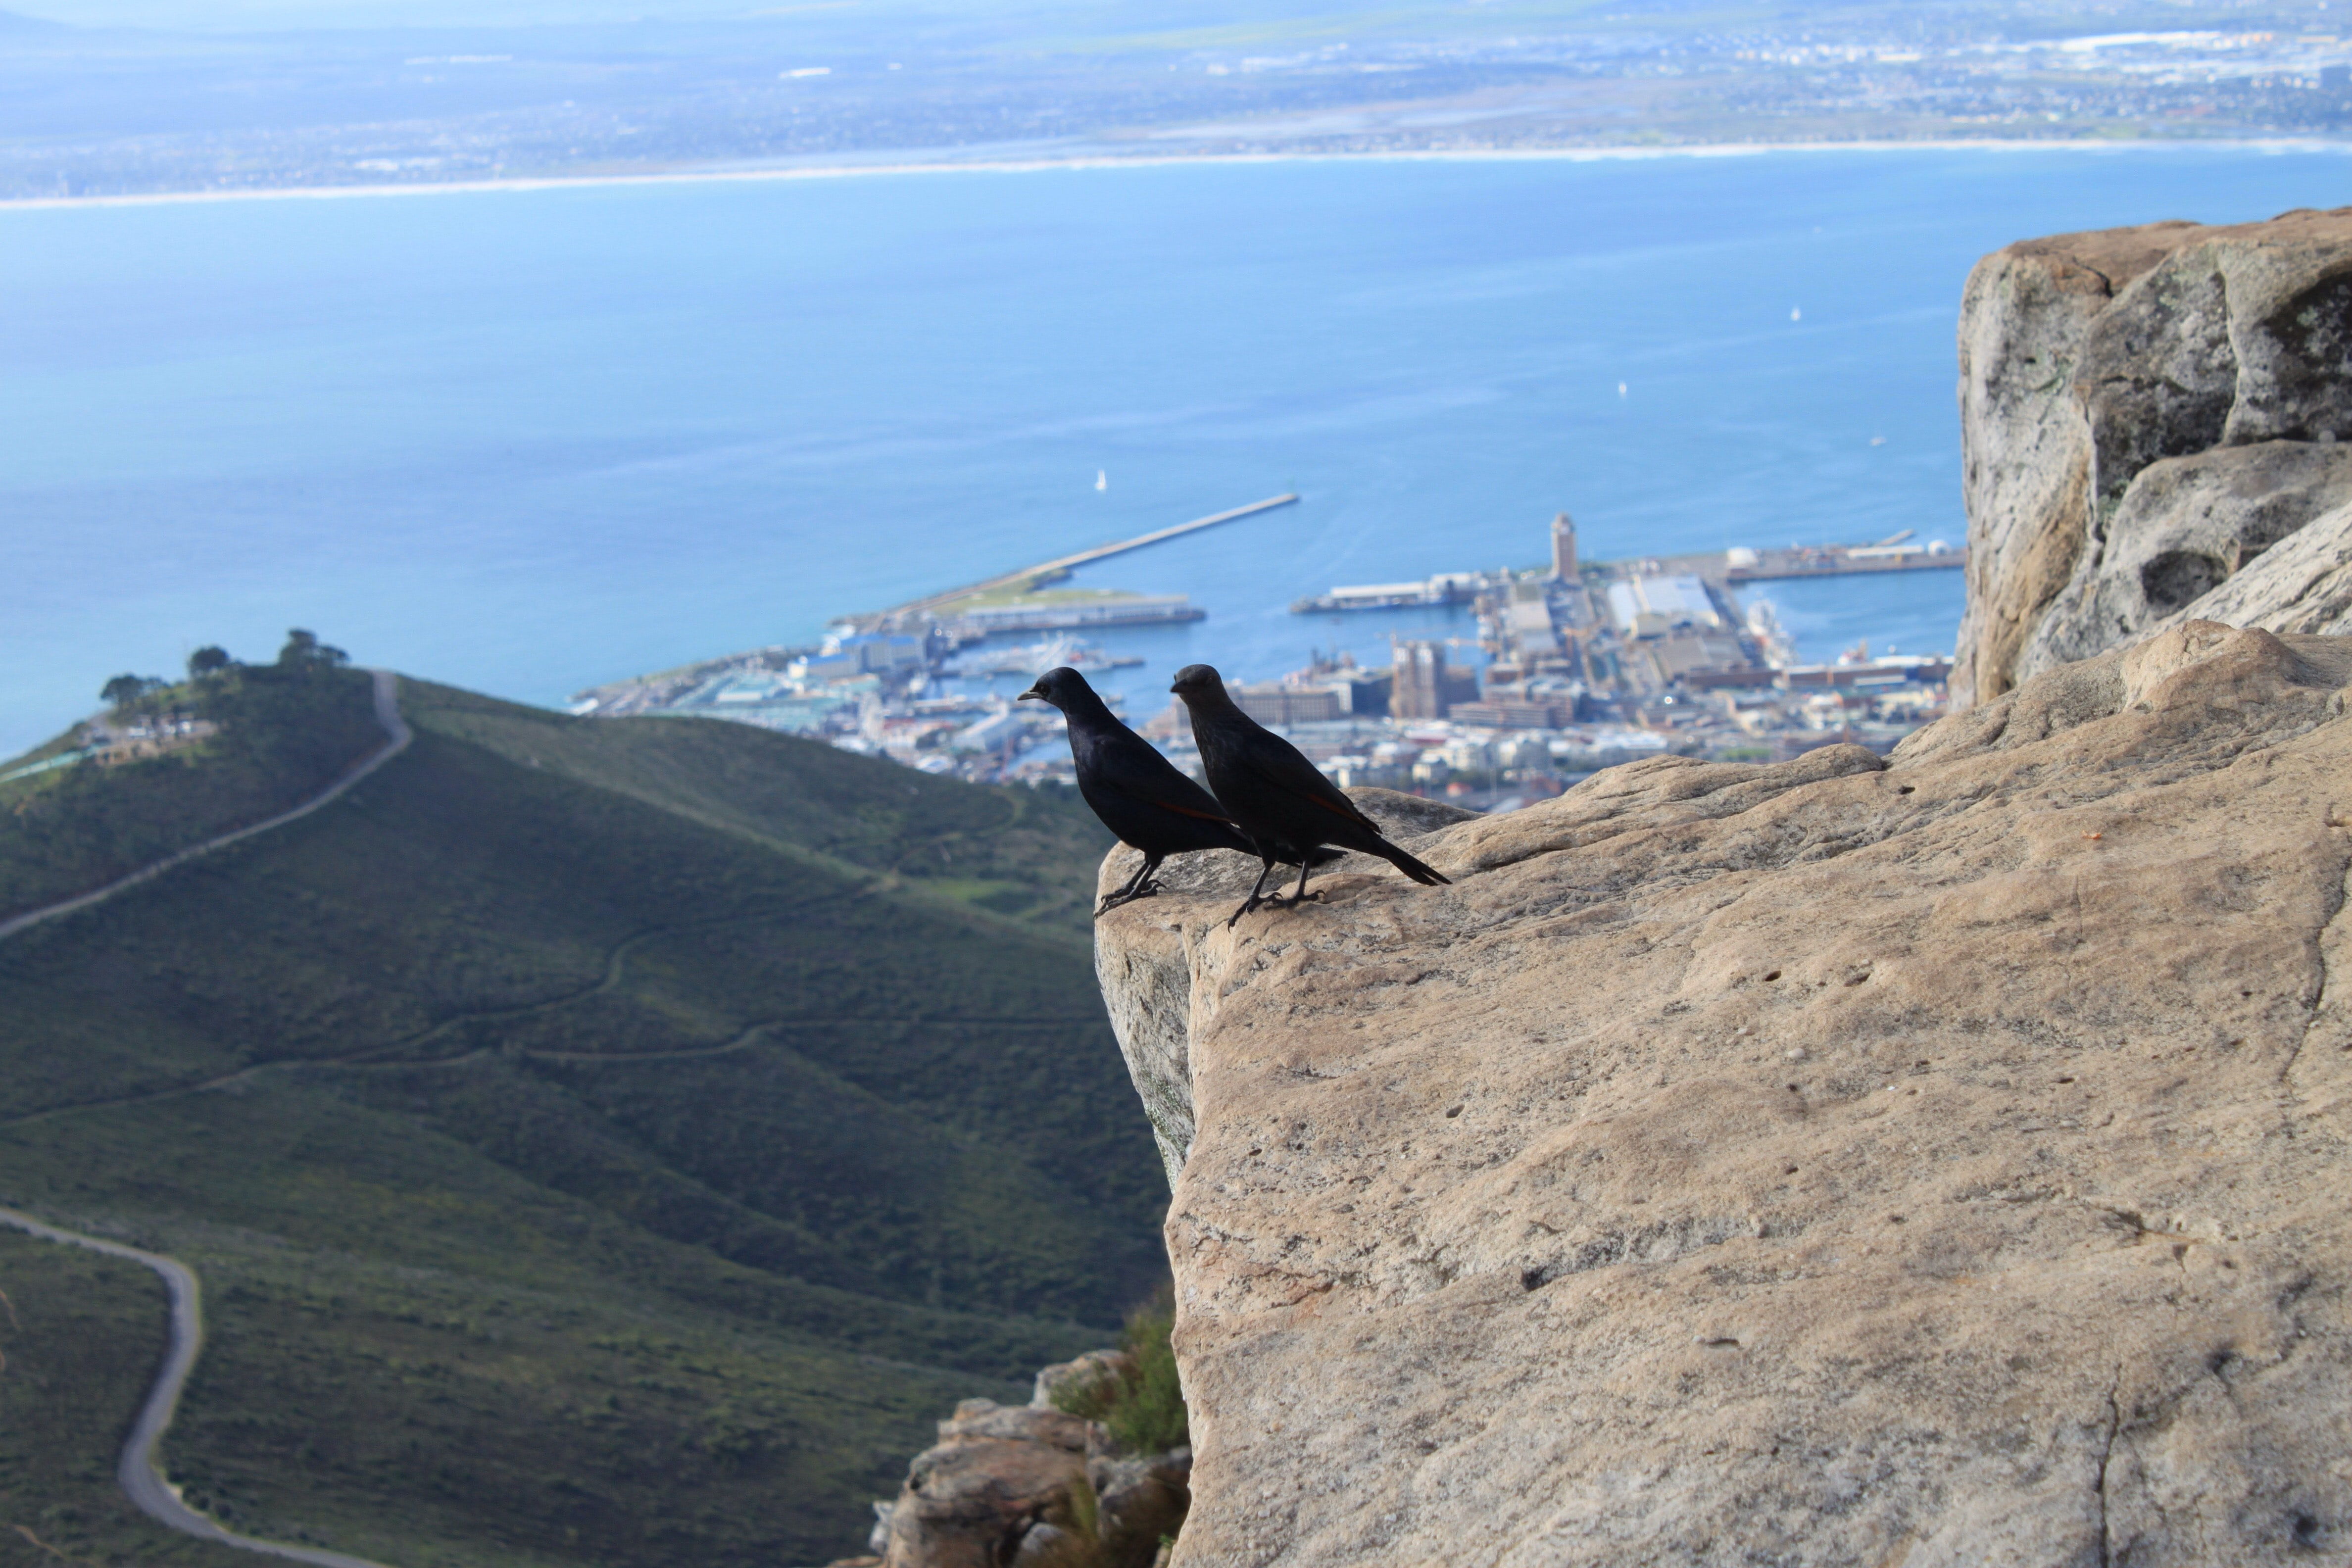 two crows near edge of cliff during daytime